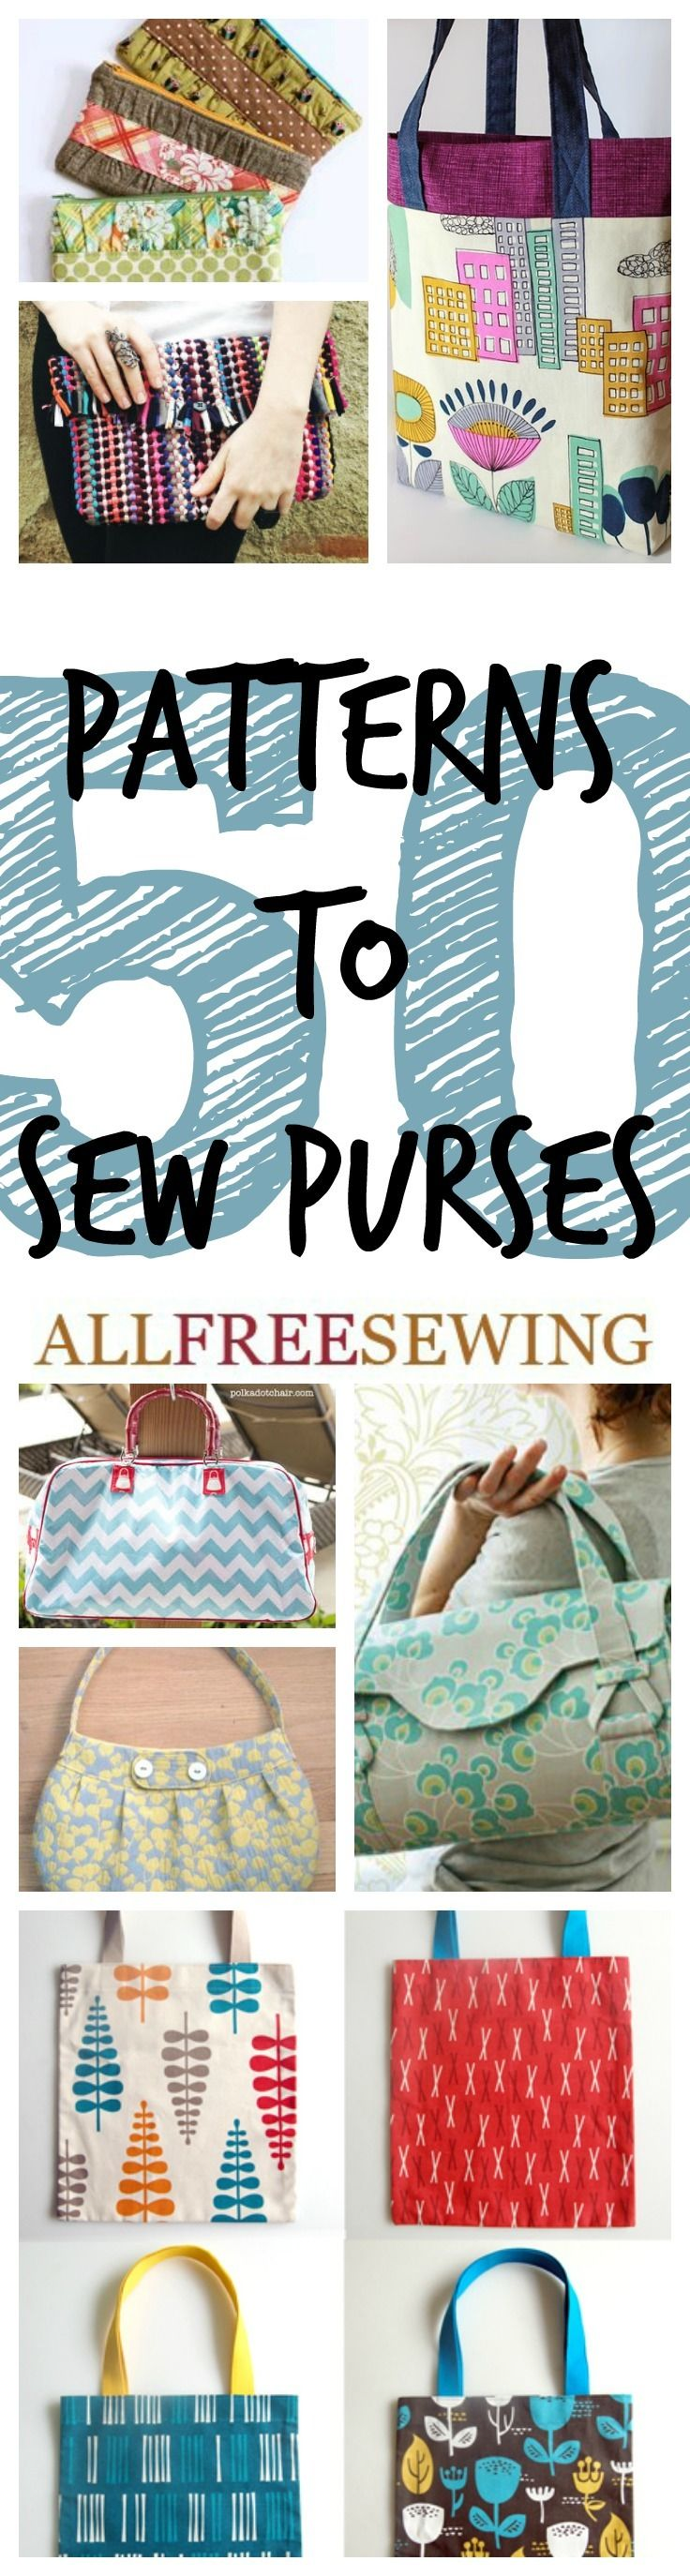 Best 500+ SO SEW images on Pinterest | Sewing projects, Sewing ...